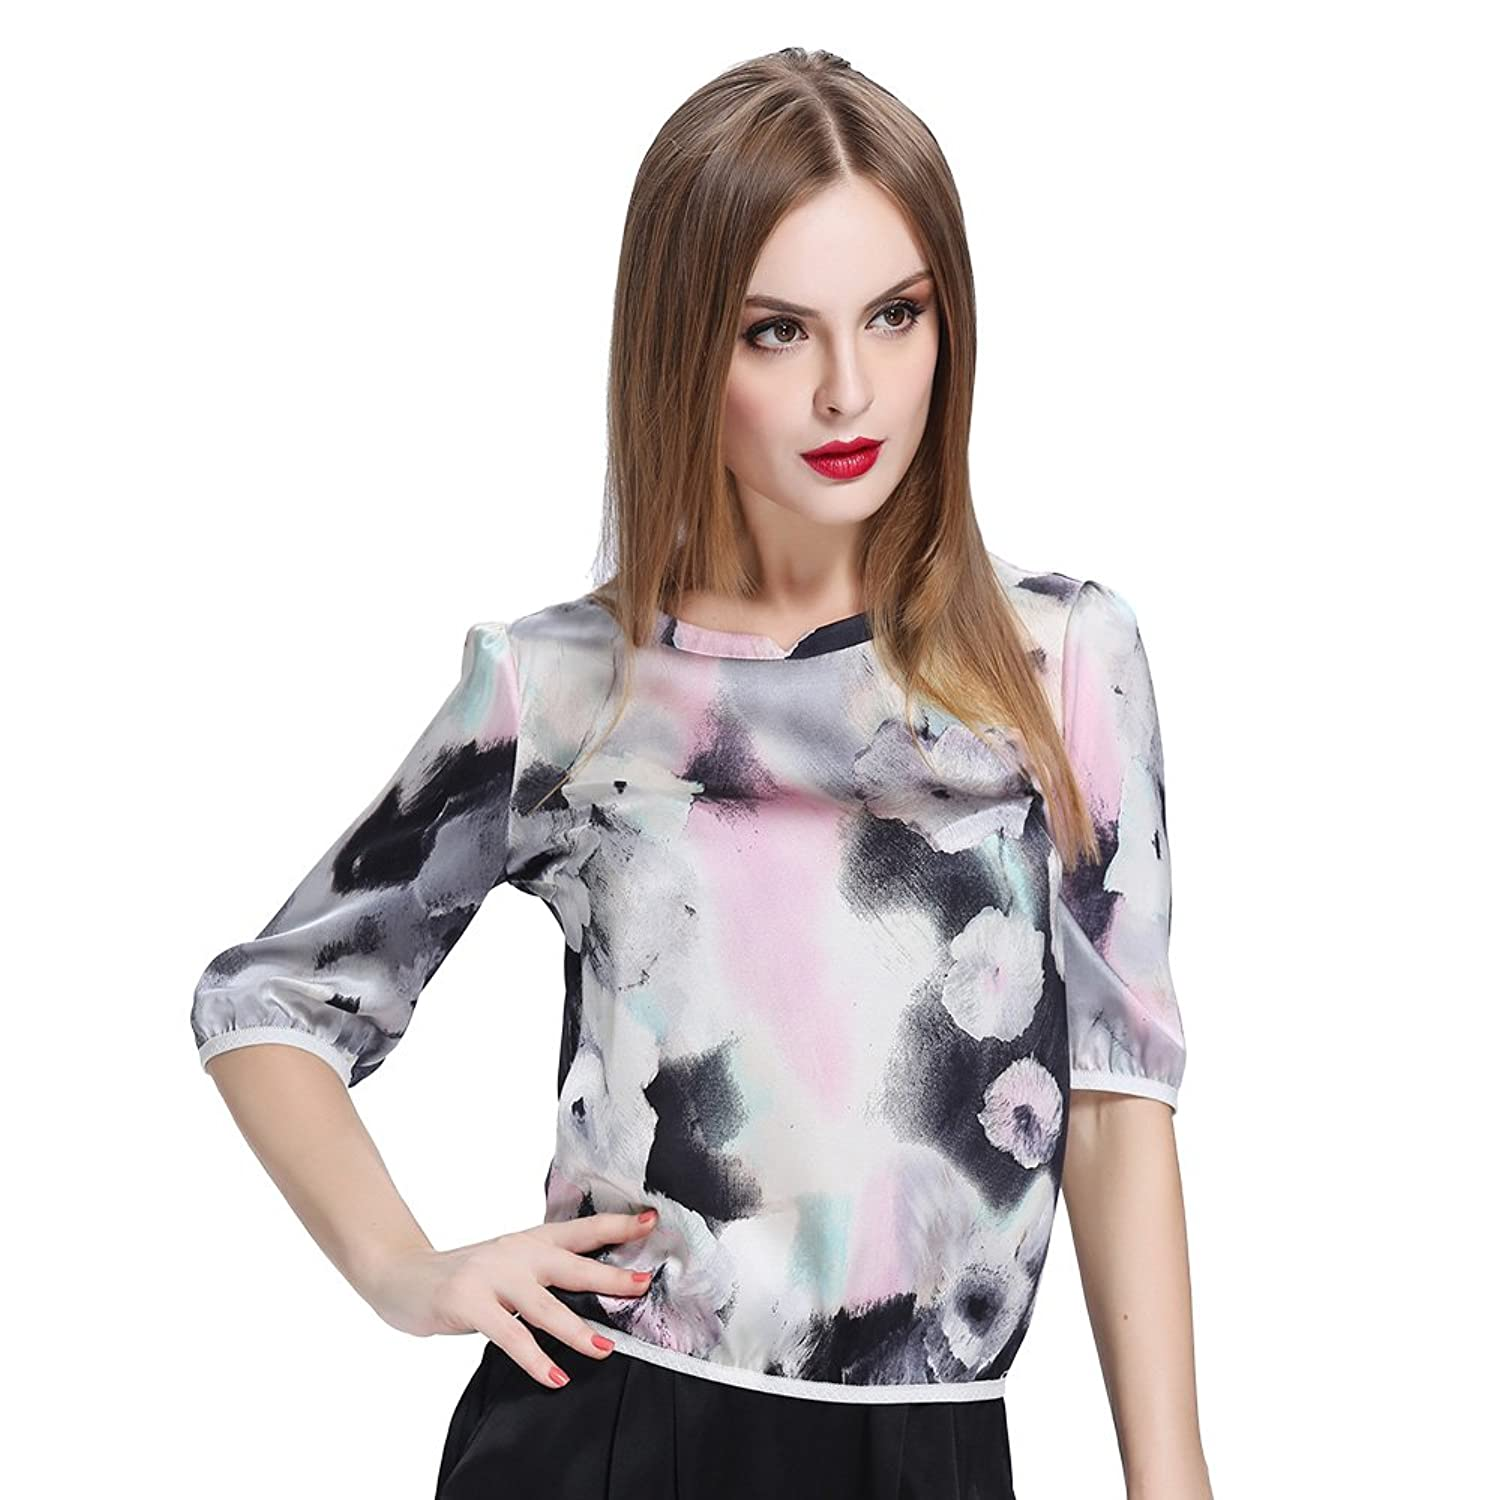 LILYSILK Women's Silk Blouse Half Sleeve Top 19 Momme Floral Ink Painting